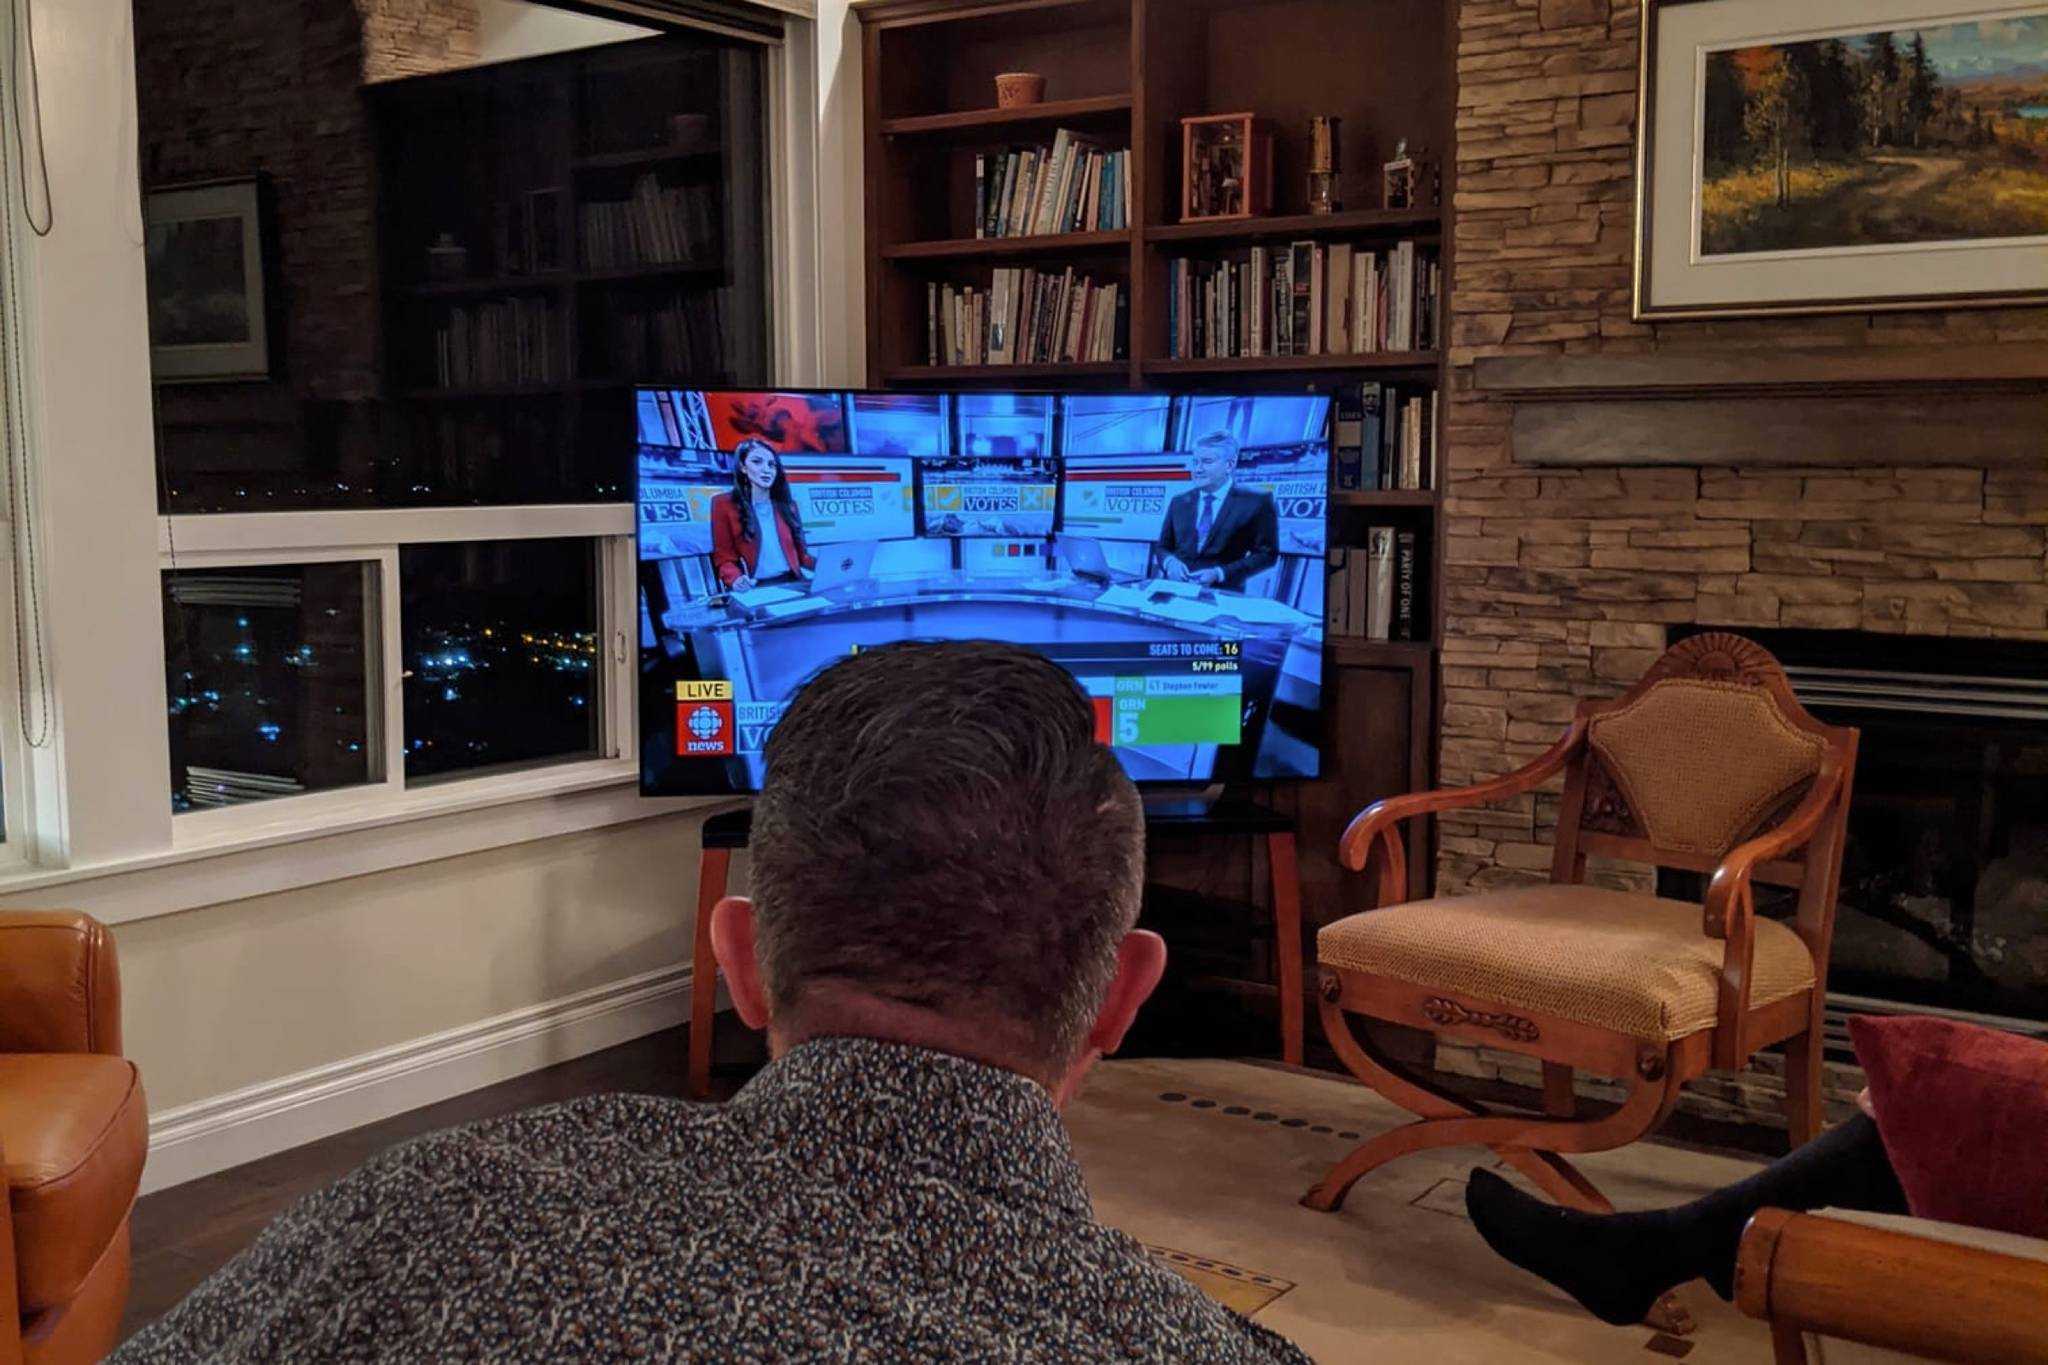 Chilliwack-Kent MLA Laurie Throness watches the results on election night. The ex-Liberal's tumultuous campaign and the narrow margin for victory ahead of the mail-in ballot count leaves the future of the riding's seat in limbo for at least the next week. (Facebook/Laurie Throness)